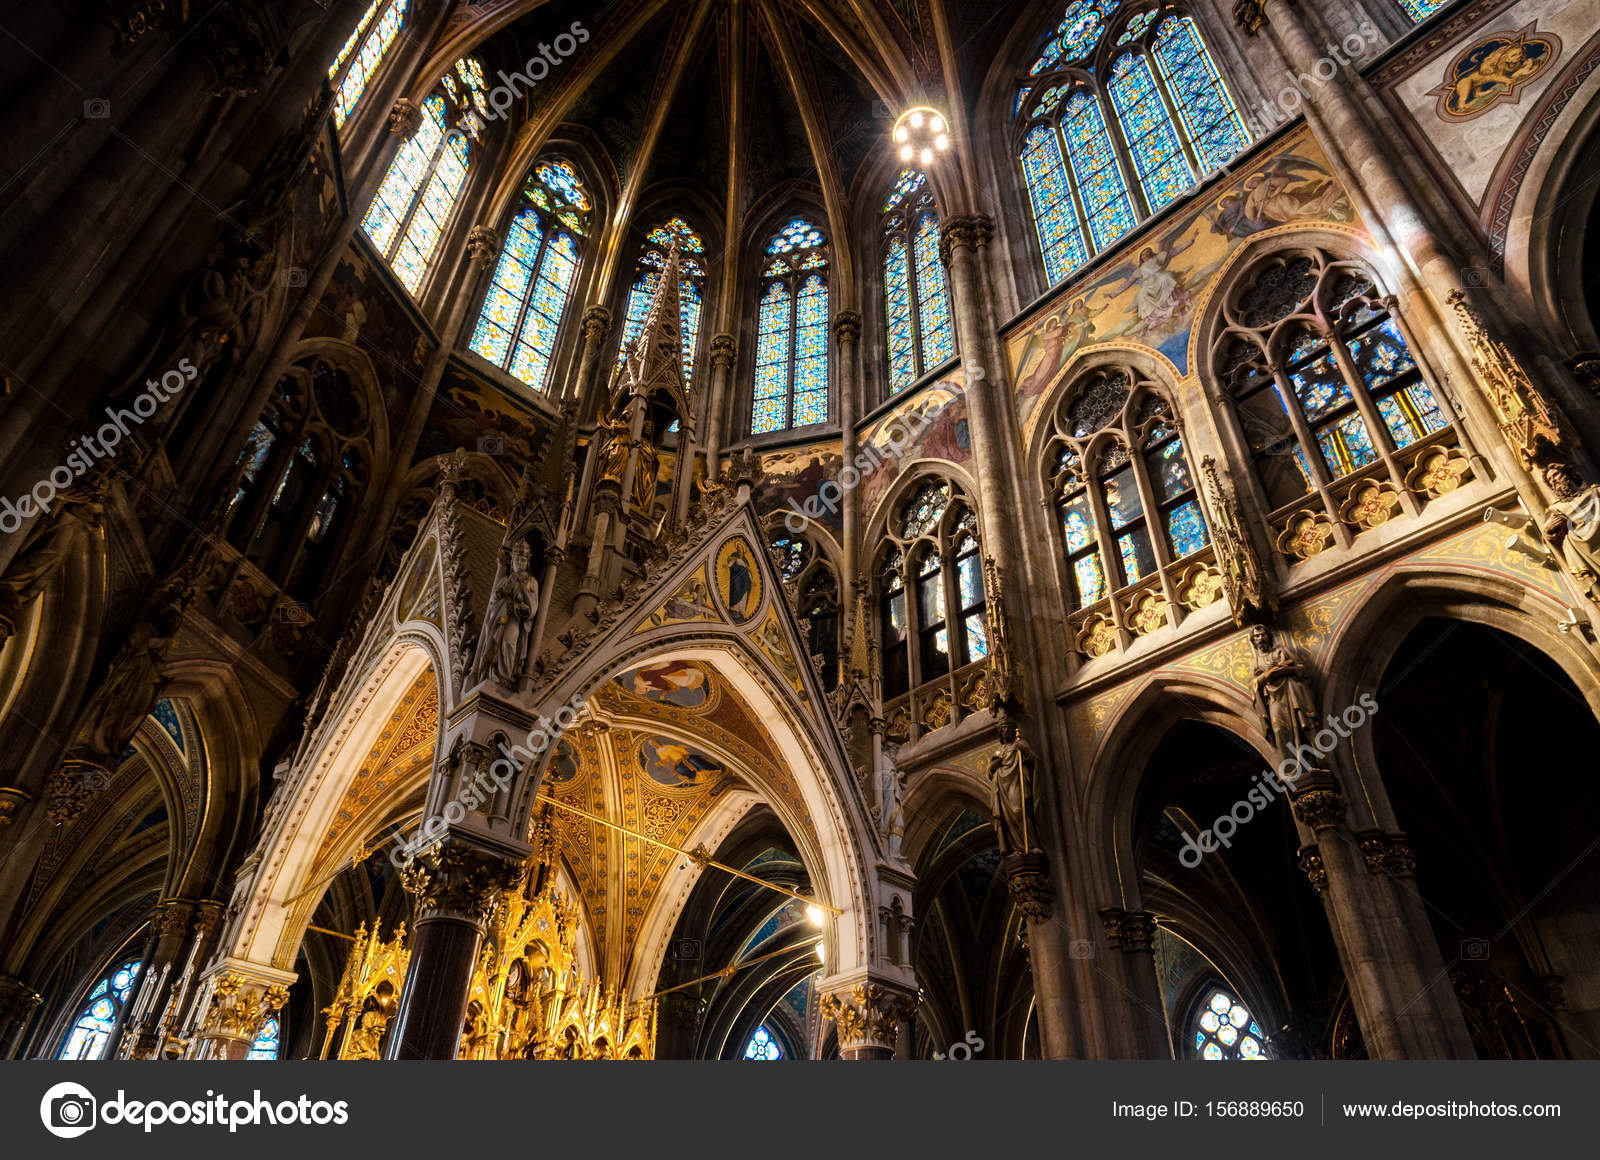 Interior Of The Famous Neo Gothic Votivkirche Votive Church In Vienna Build By Archduke Ferdinand Maximilian After Failed Assassination Attempt